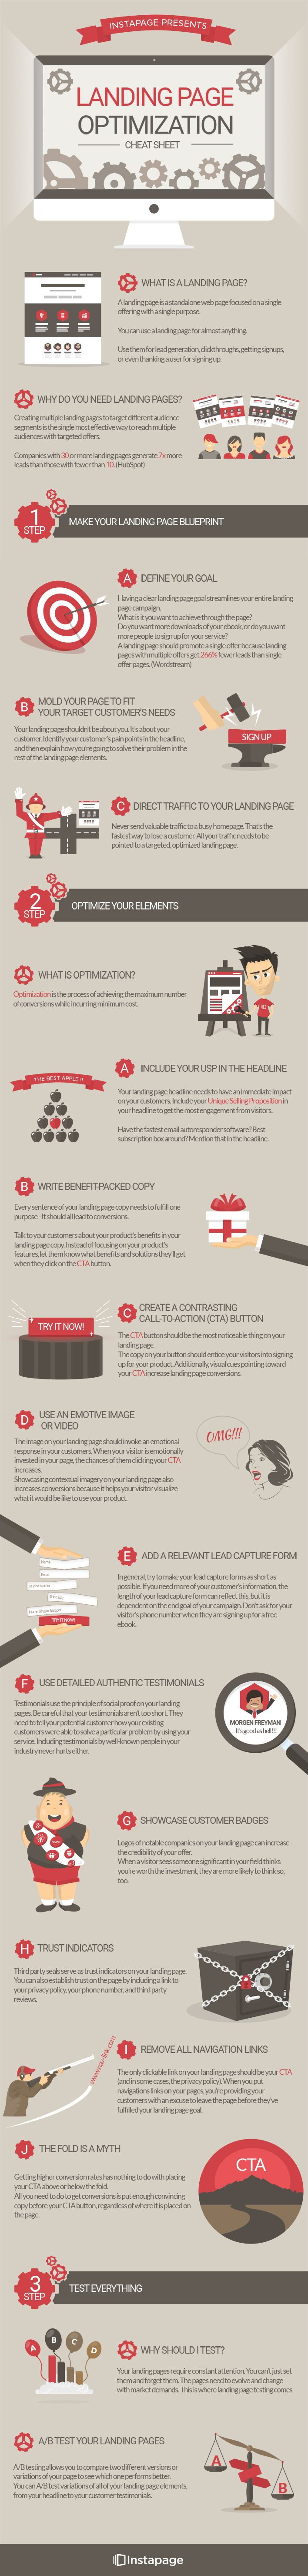 Landing Page Optimization Cheat Sheet #infographic